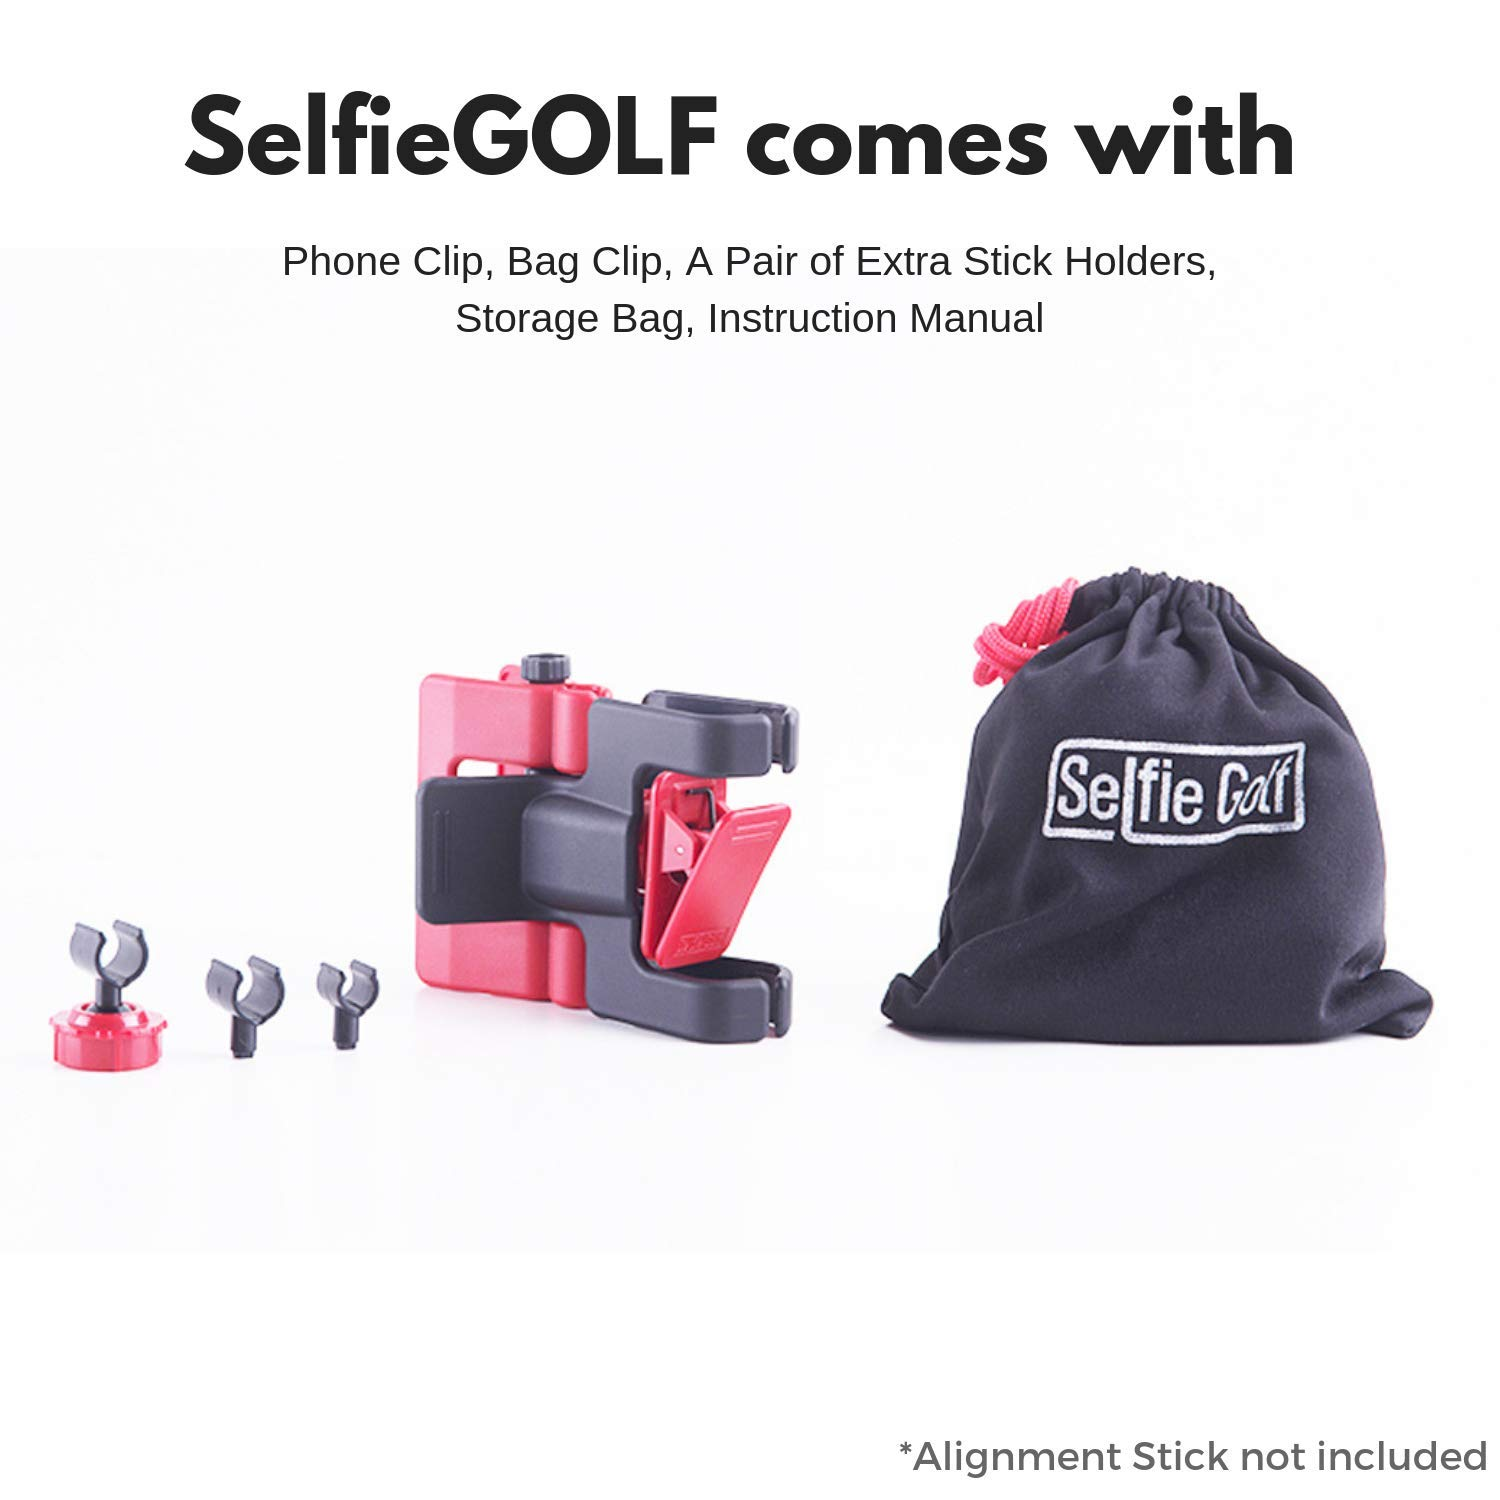 SelfieGolf Record Golf Swing - Cell Phone Clip Holder and Training Aid by TM - Golf Accessories | The Winner of The PGA Best of 2017 | Compatible with Any Smart Phone (Red/White) by Selfie Golf (Image #6)